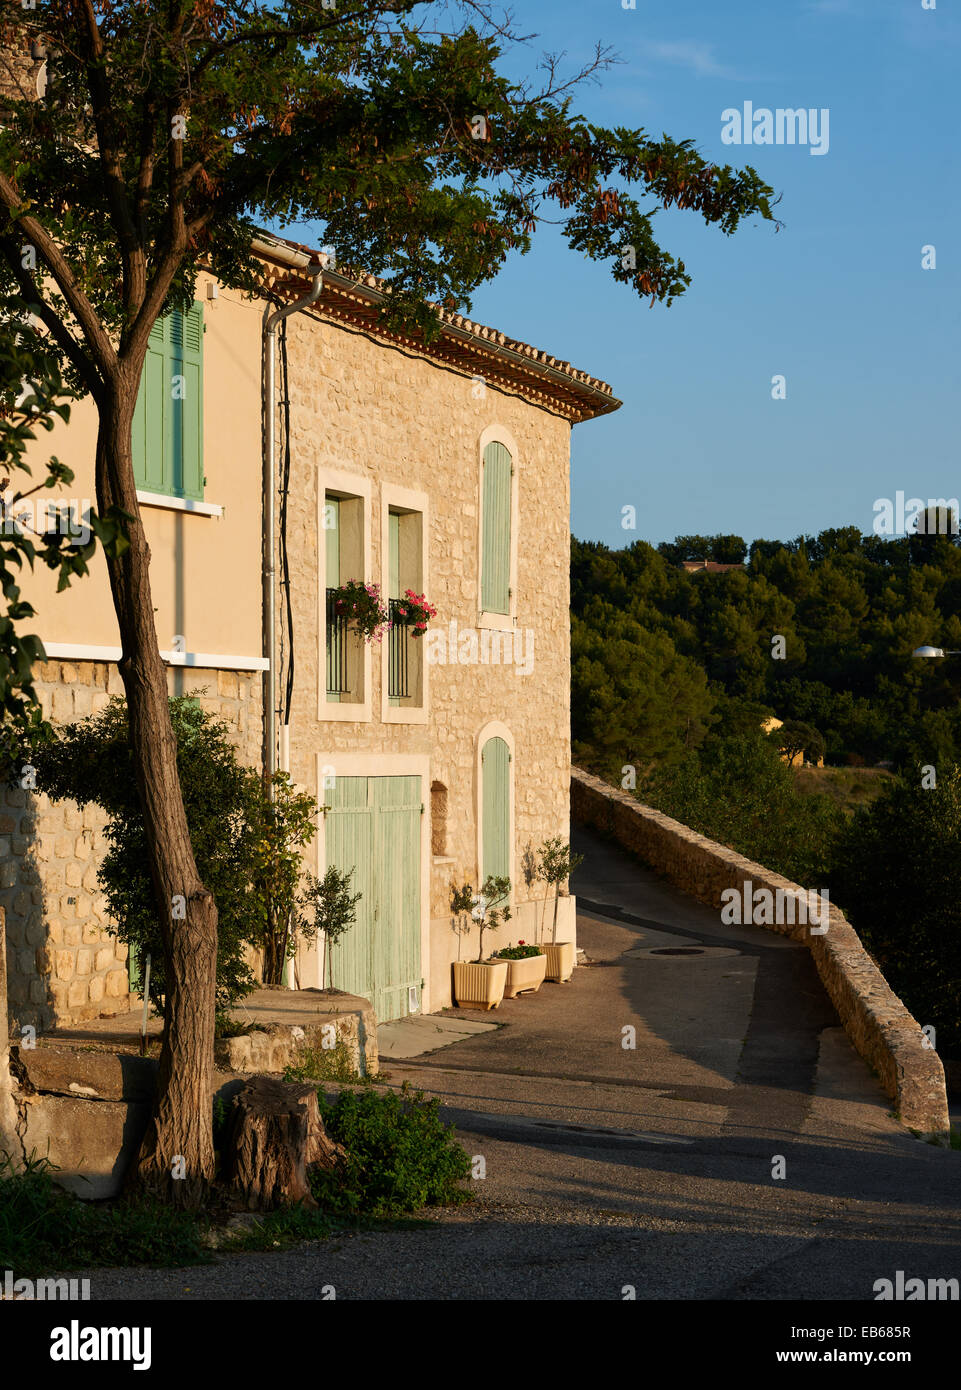 Typical French Provence Architecture Stone House In Grambois Village France